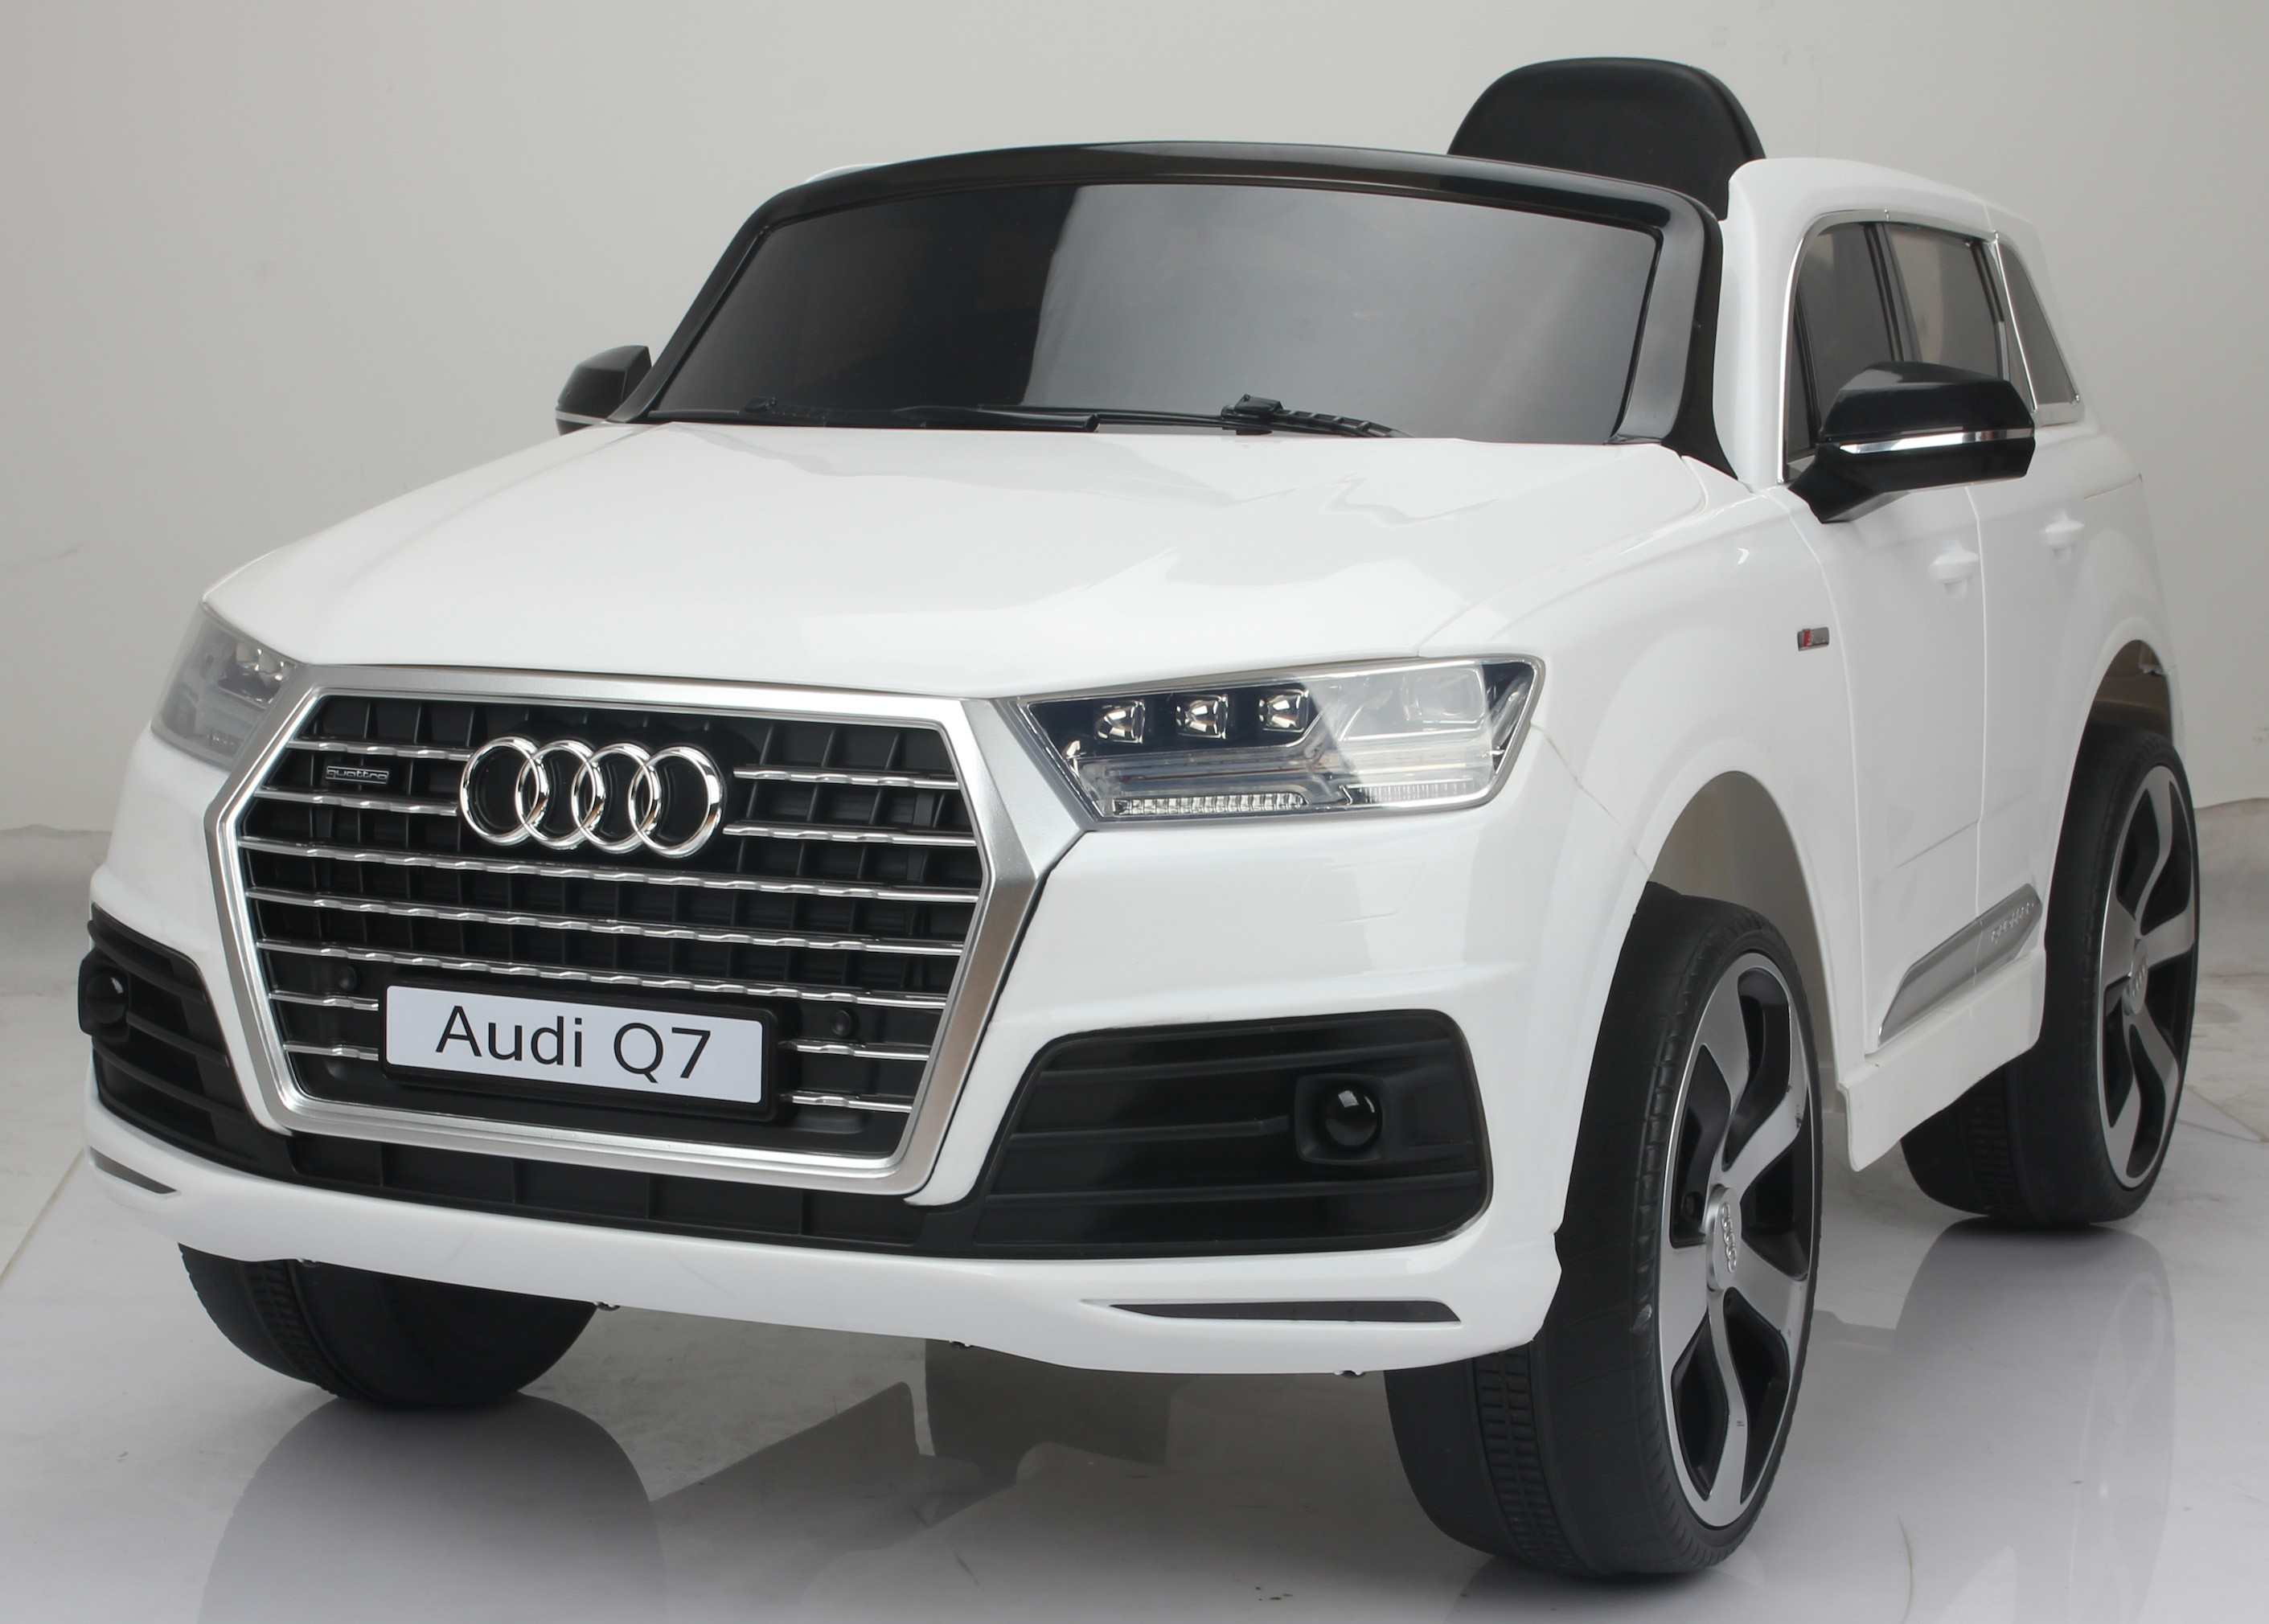 licensed audi q7 4 2 tdi quattro kids electric ride on car. Black Bedroom Furniture Sets. Home Design Ideas